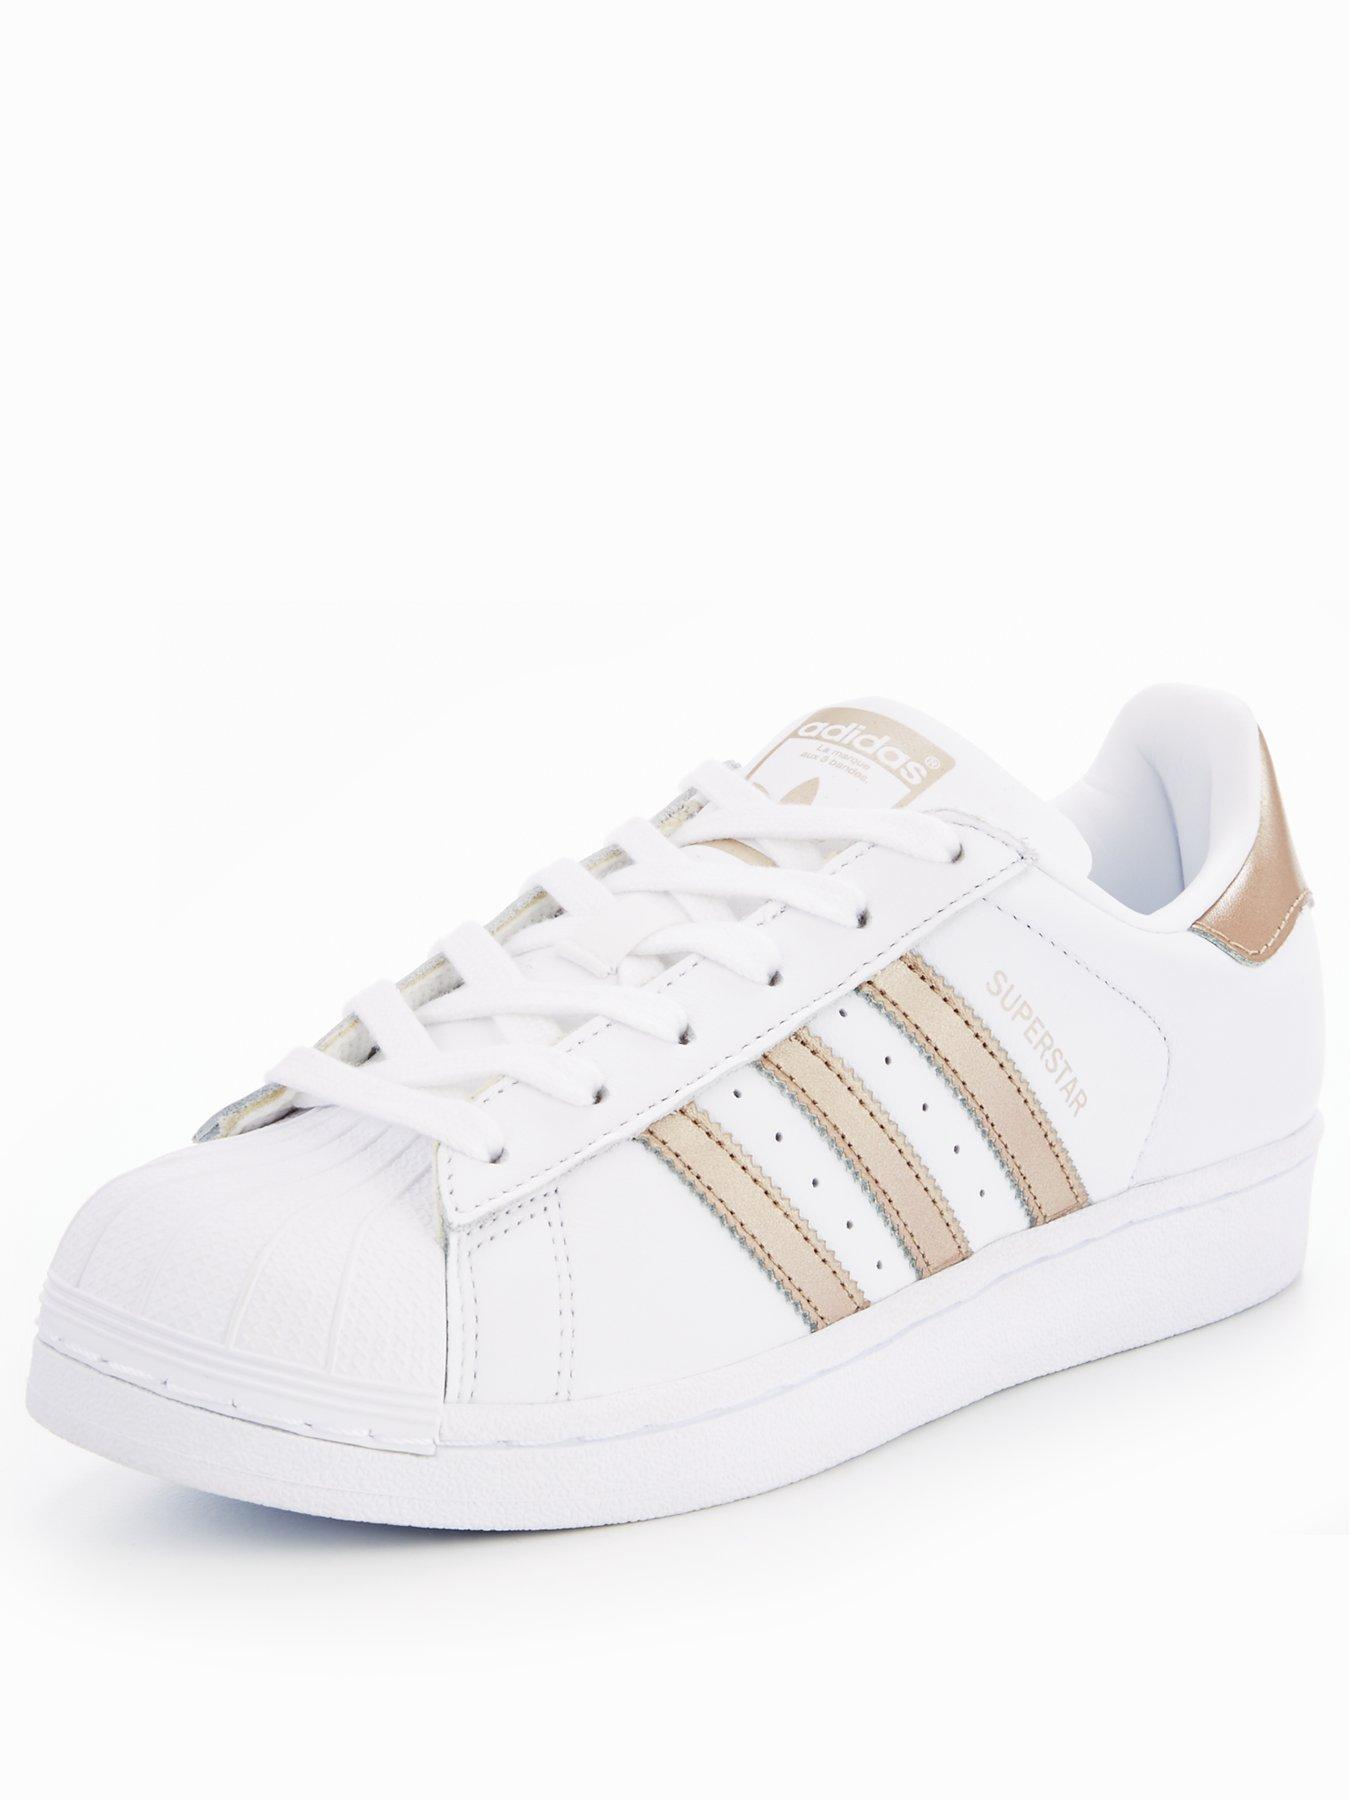 adidas Originals Superstar - White/Gold